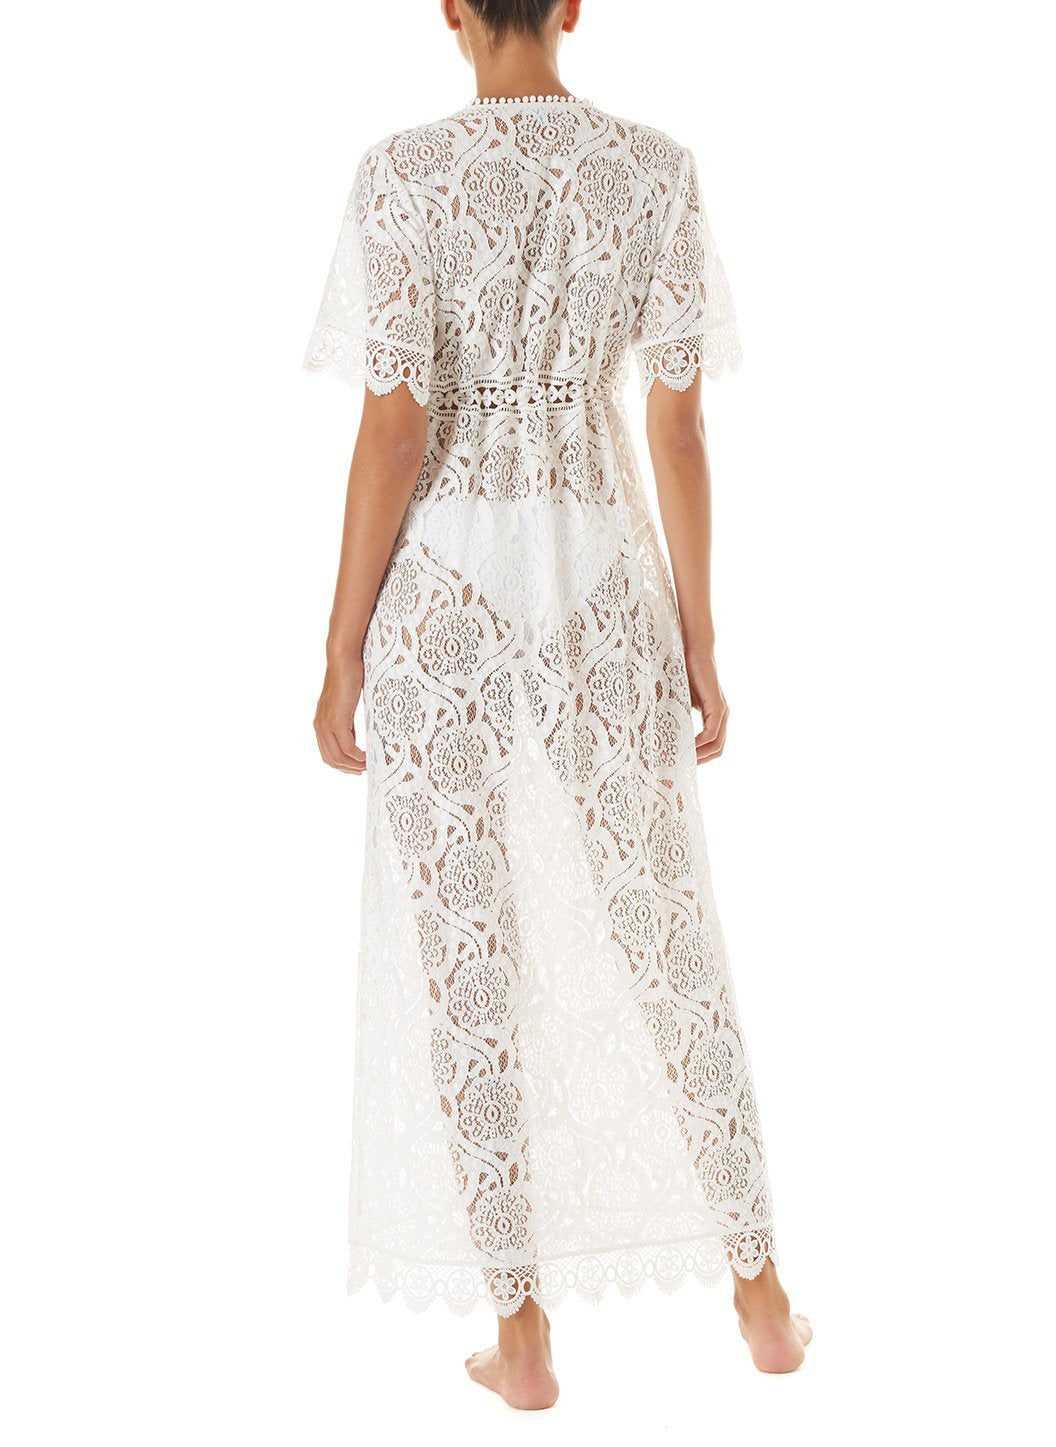 gabrielle cream embroidered lace maxi button down coverup 2019 B